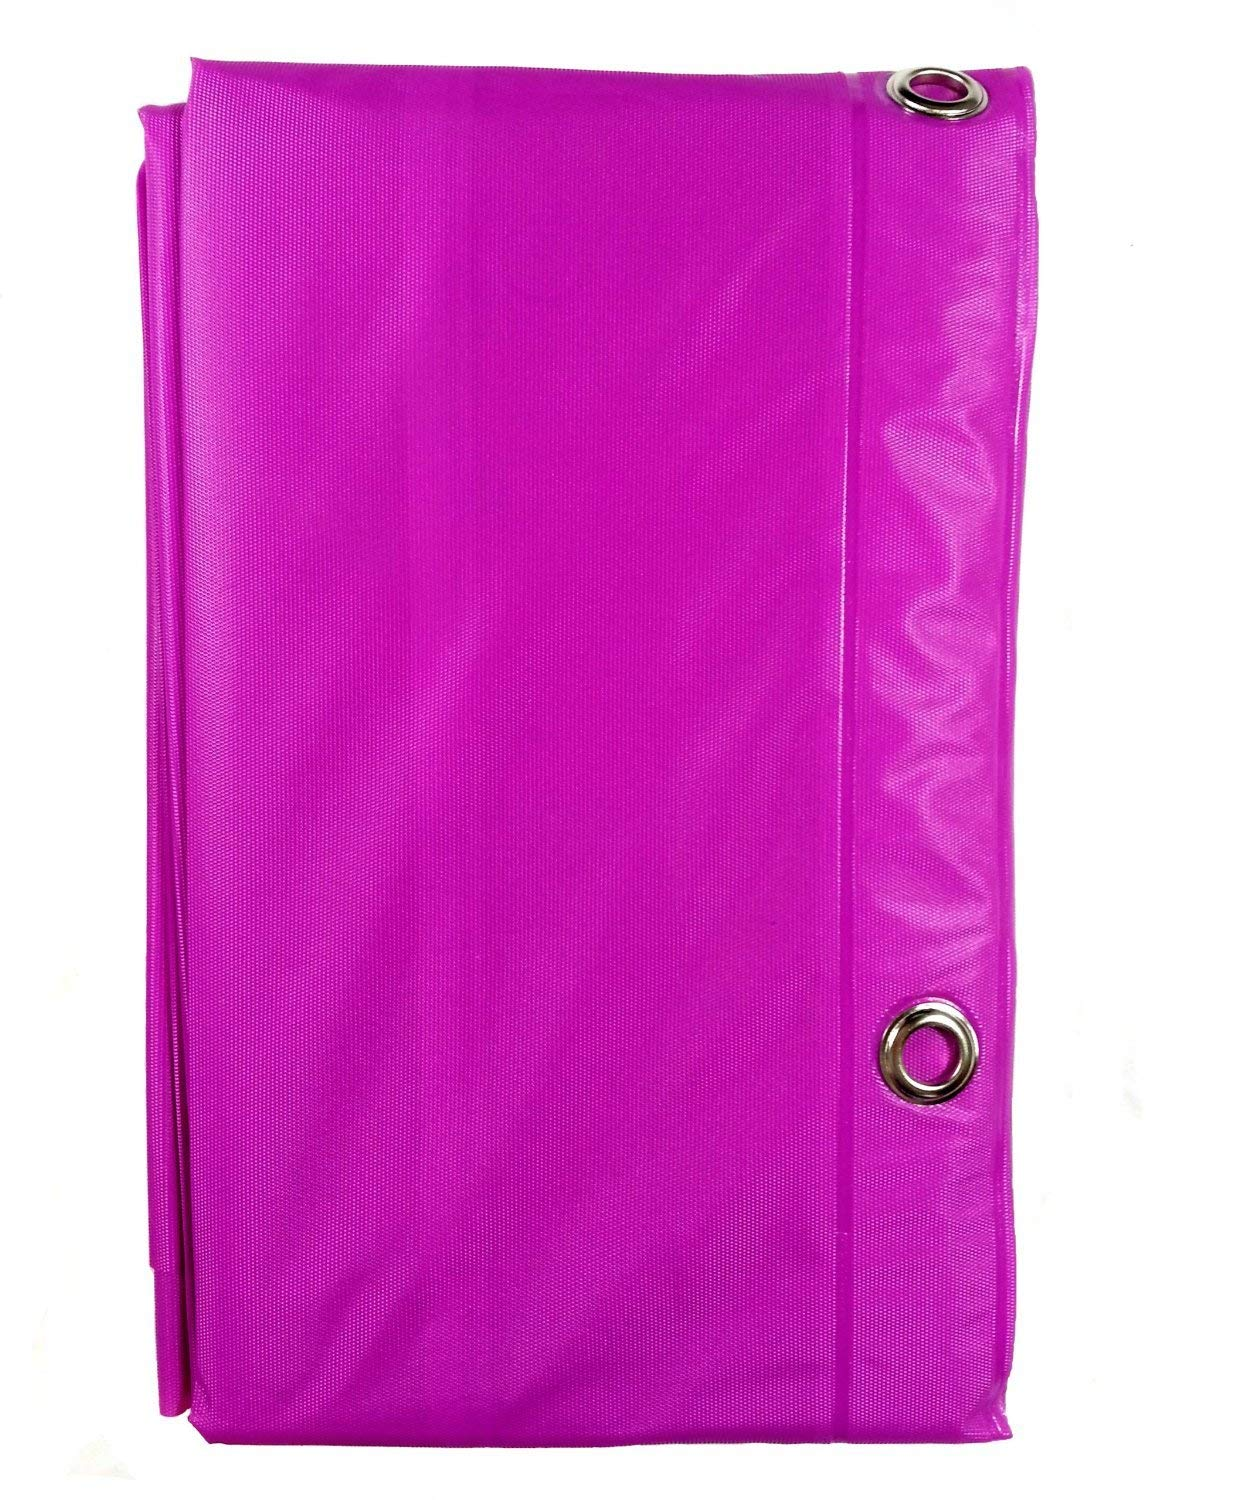 Home&Bath Collection Vinyl Magnetic Shower Curtain Liner with Grommets - 70 x 72 - (Fushia)